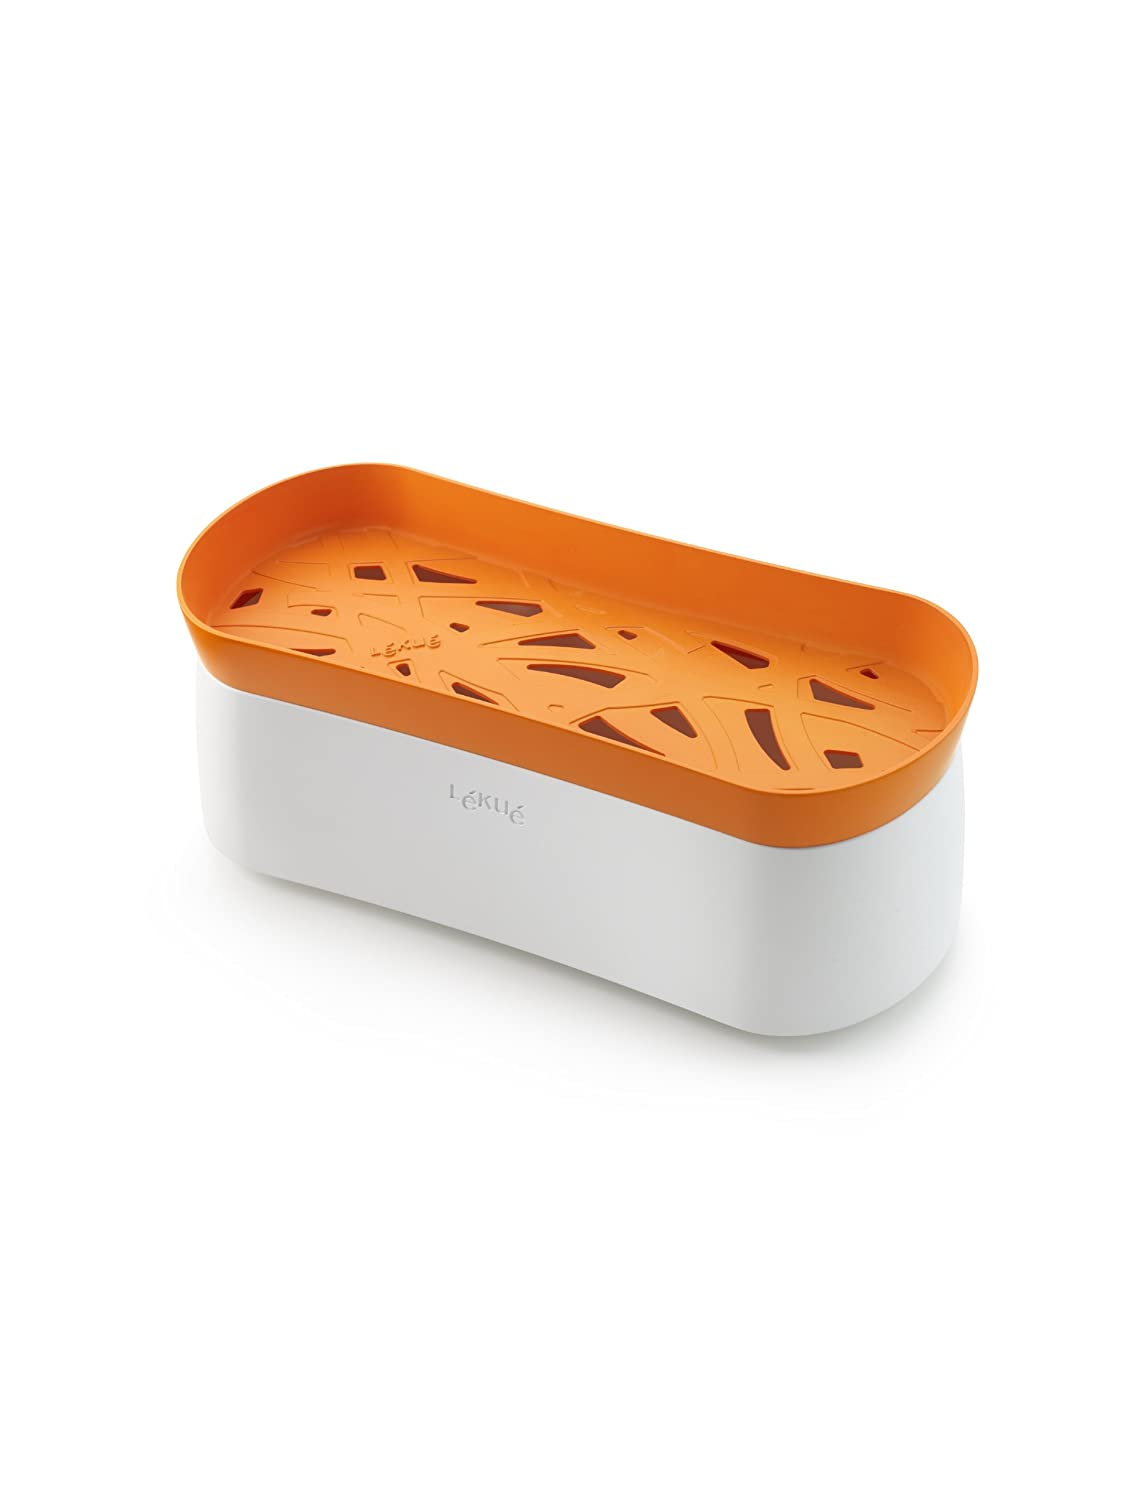 Lekue Pasta Cooker Orange Lékué 0200702N07M017